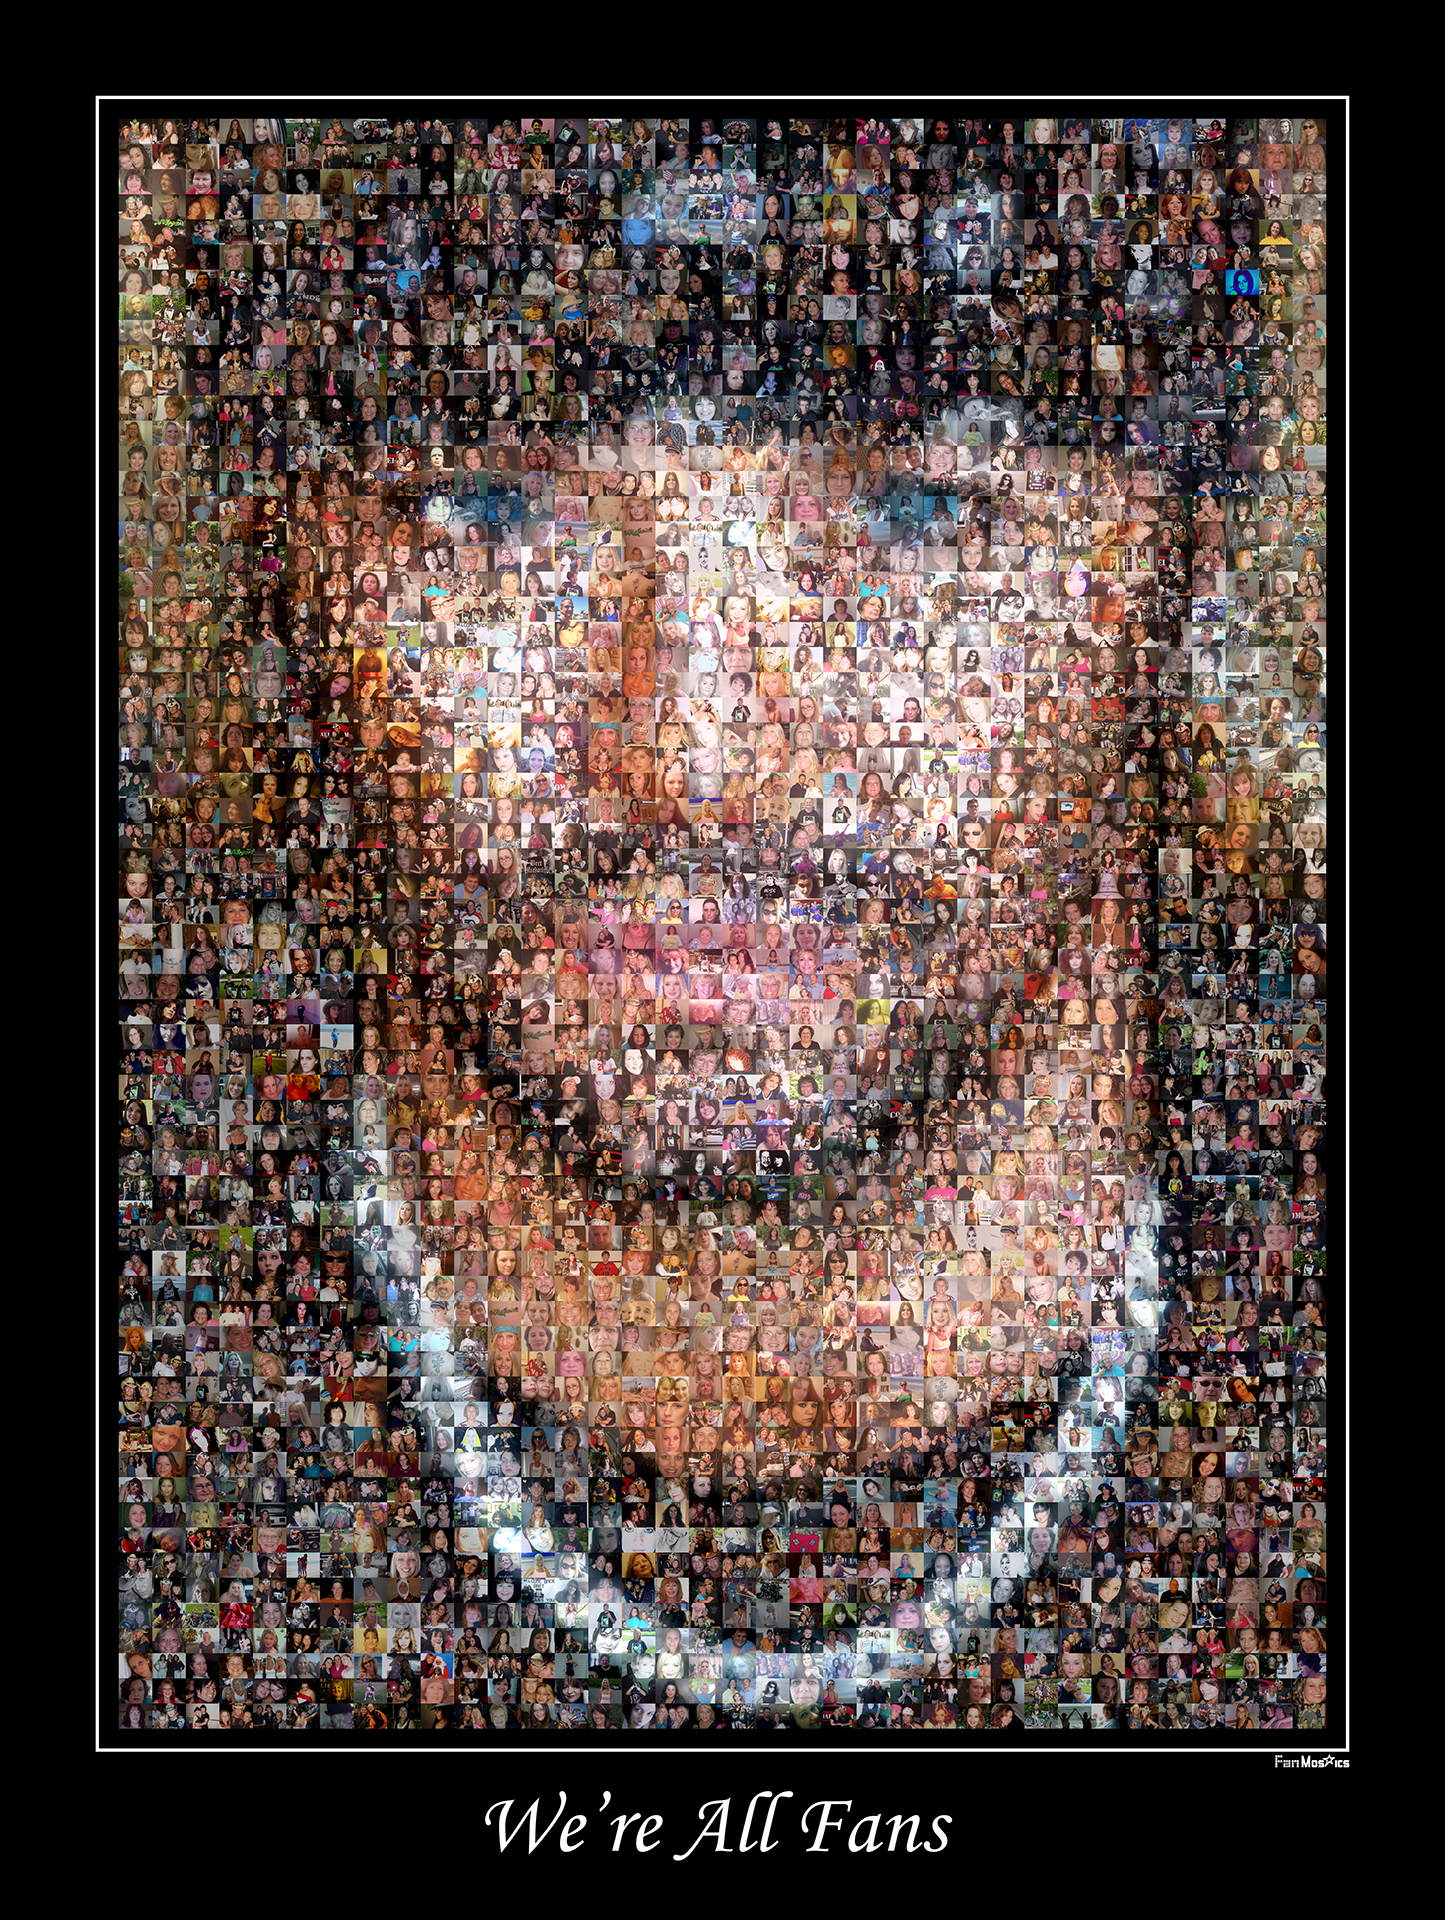 photo mosaic created using over 1,800 fan submitted photos